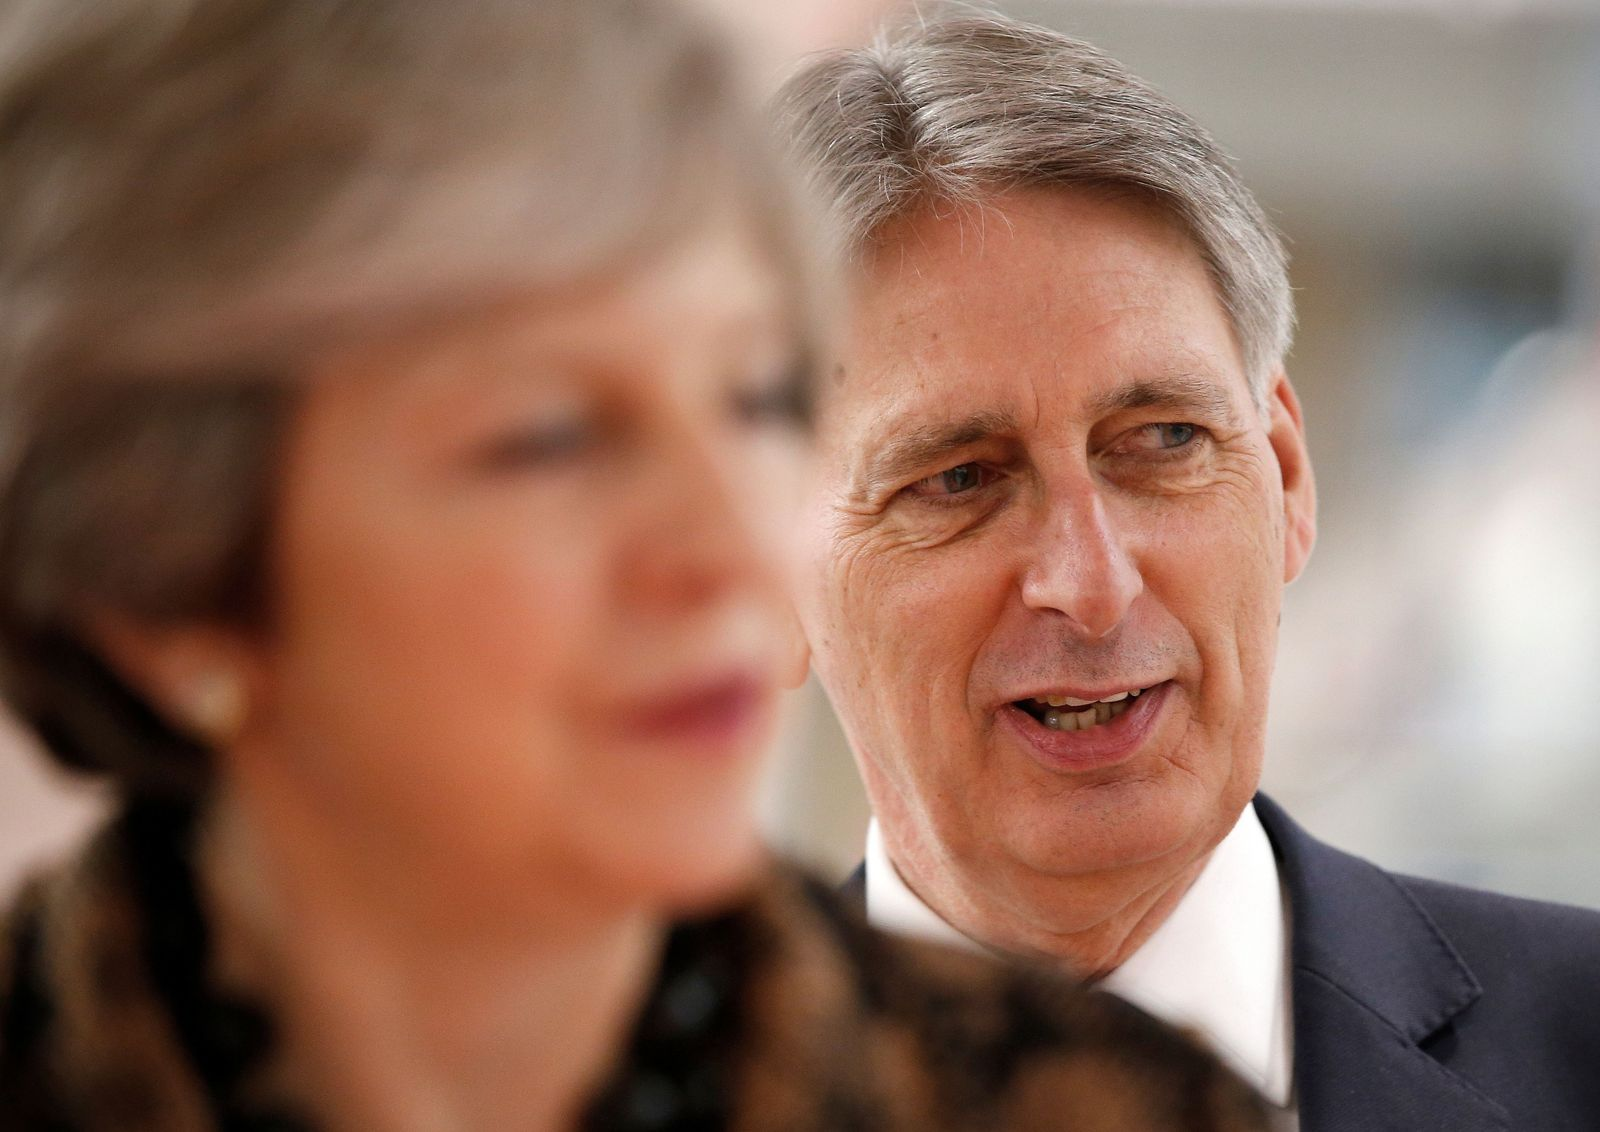 Philip Hammond/ Theresa May